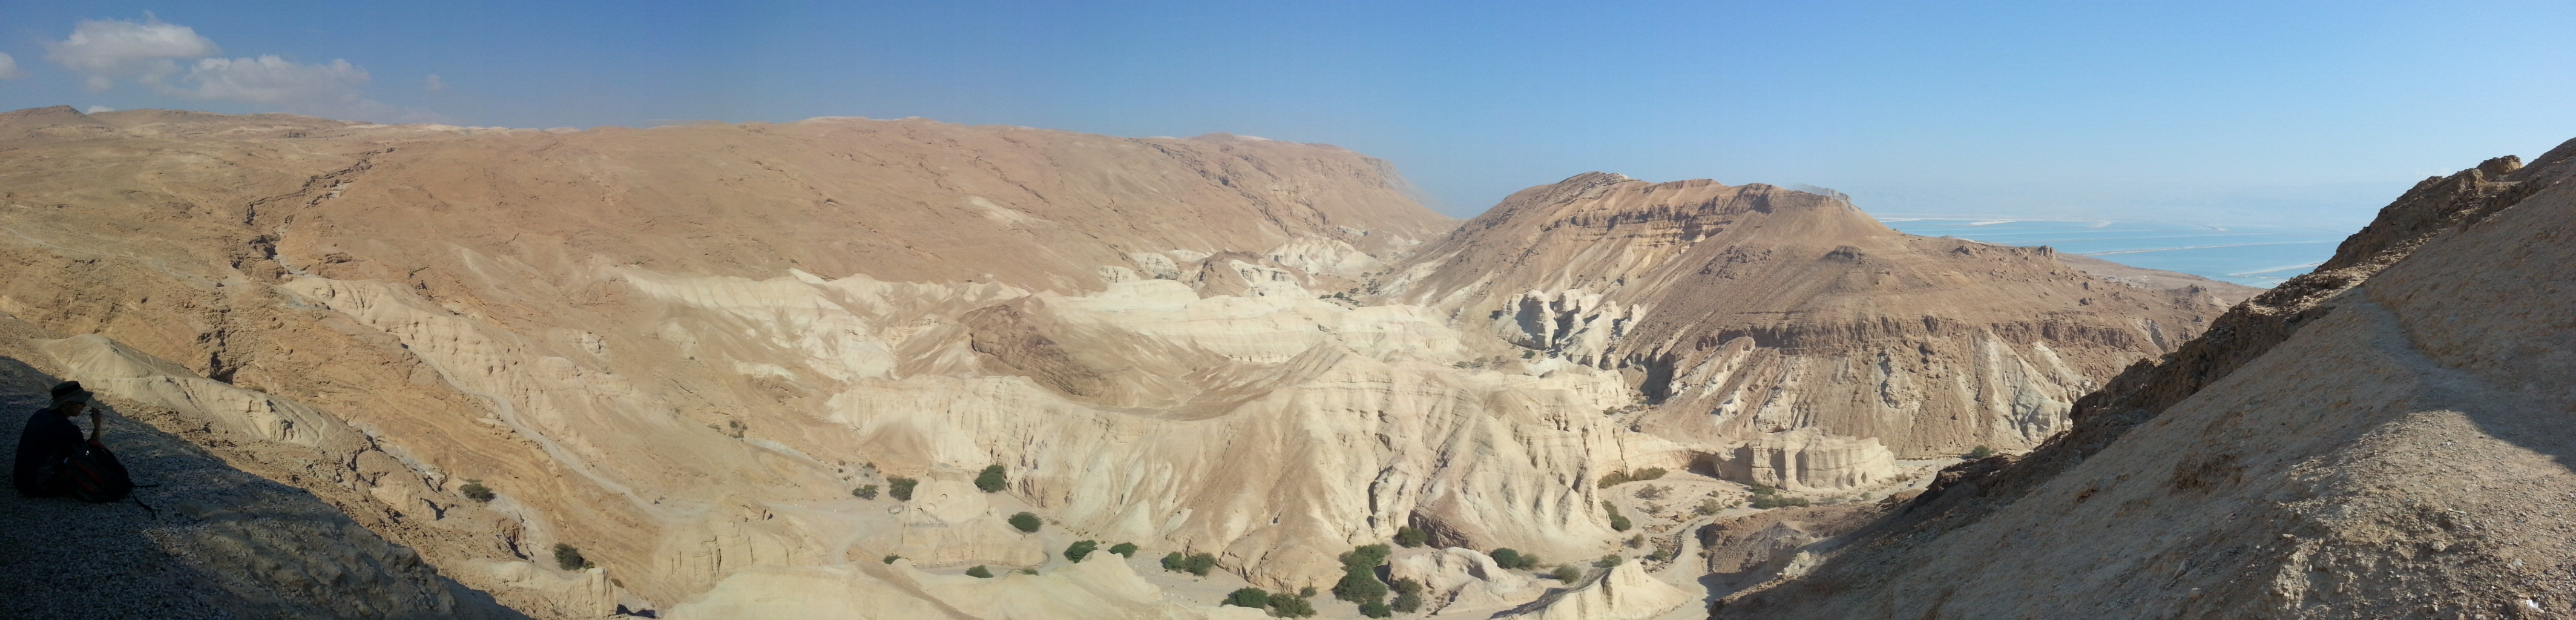 View from Meitzad Zohar Viewpoint